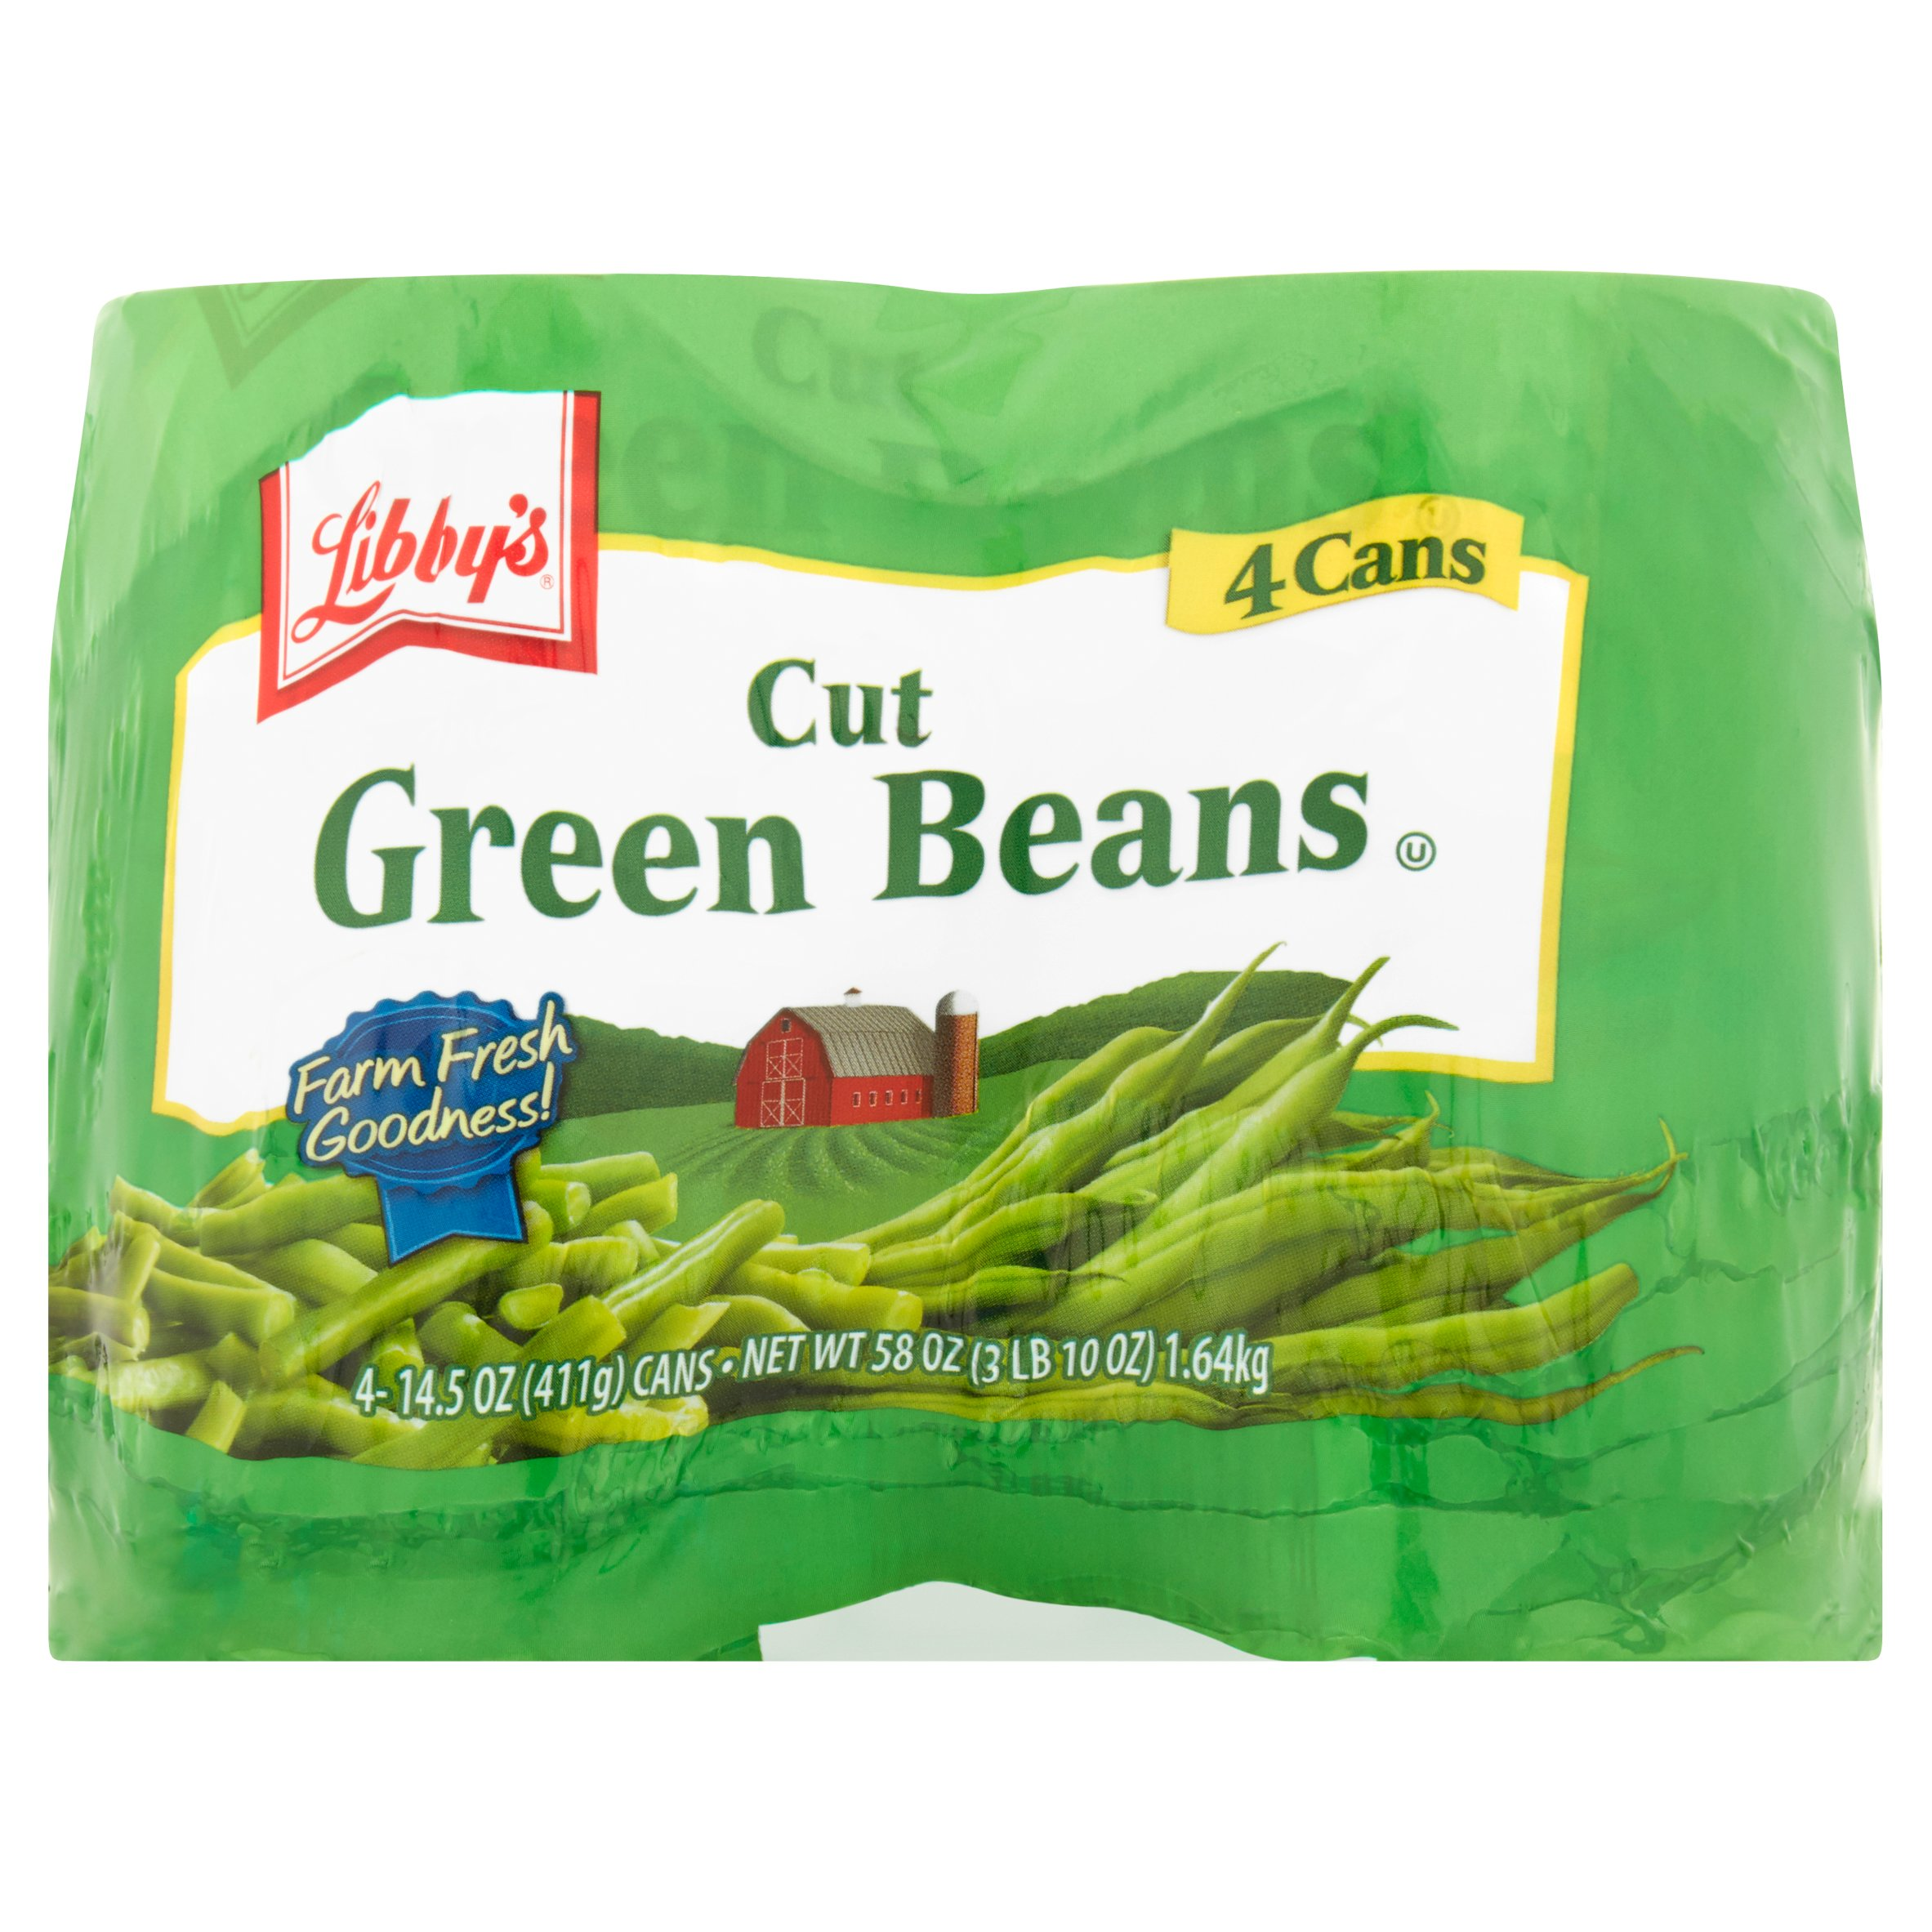 Libby's Cut Green Beans, 14.5 Oz, 4 Cans